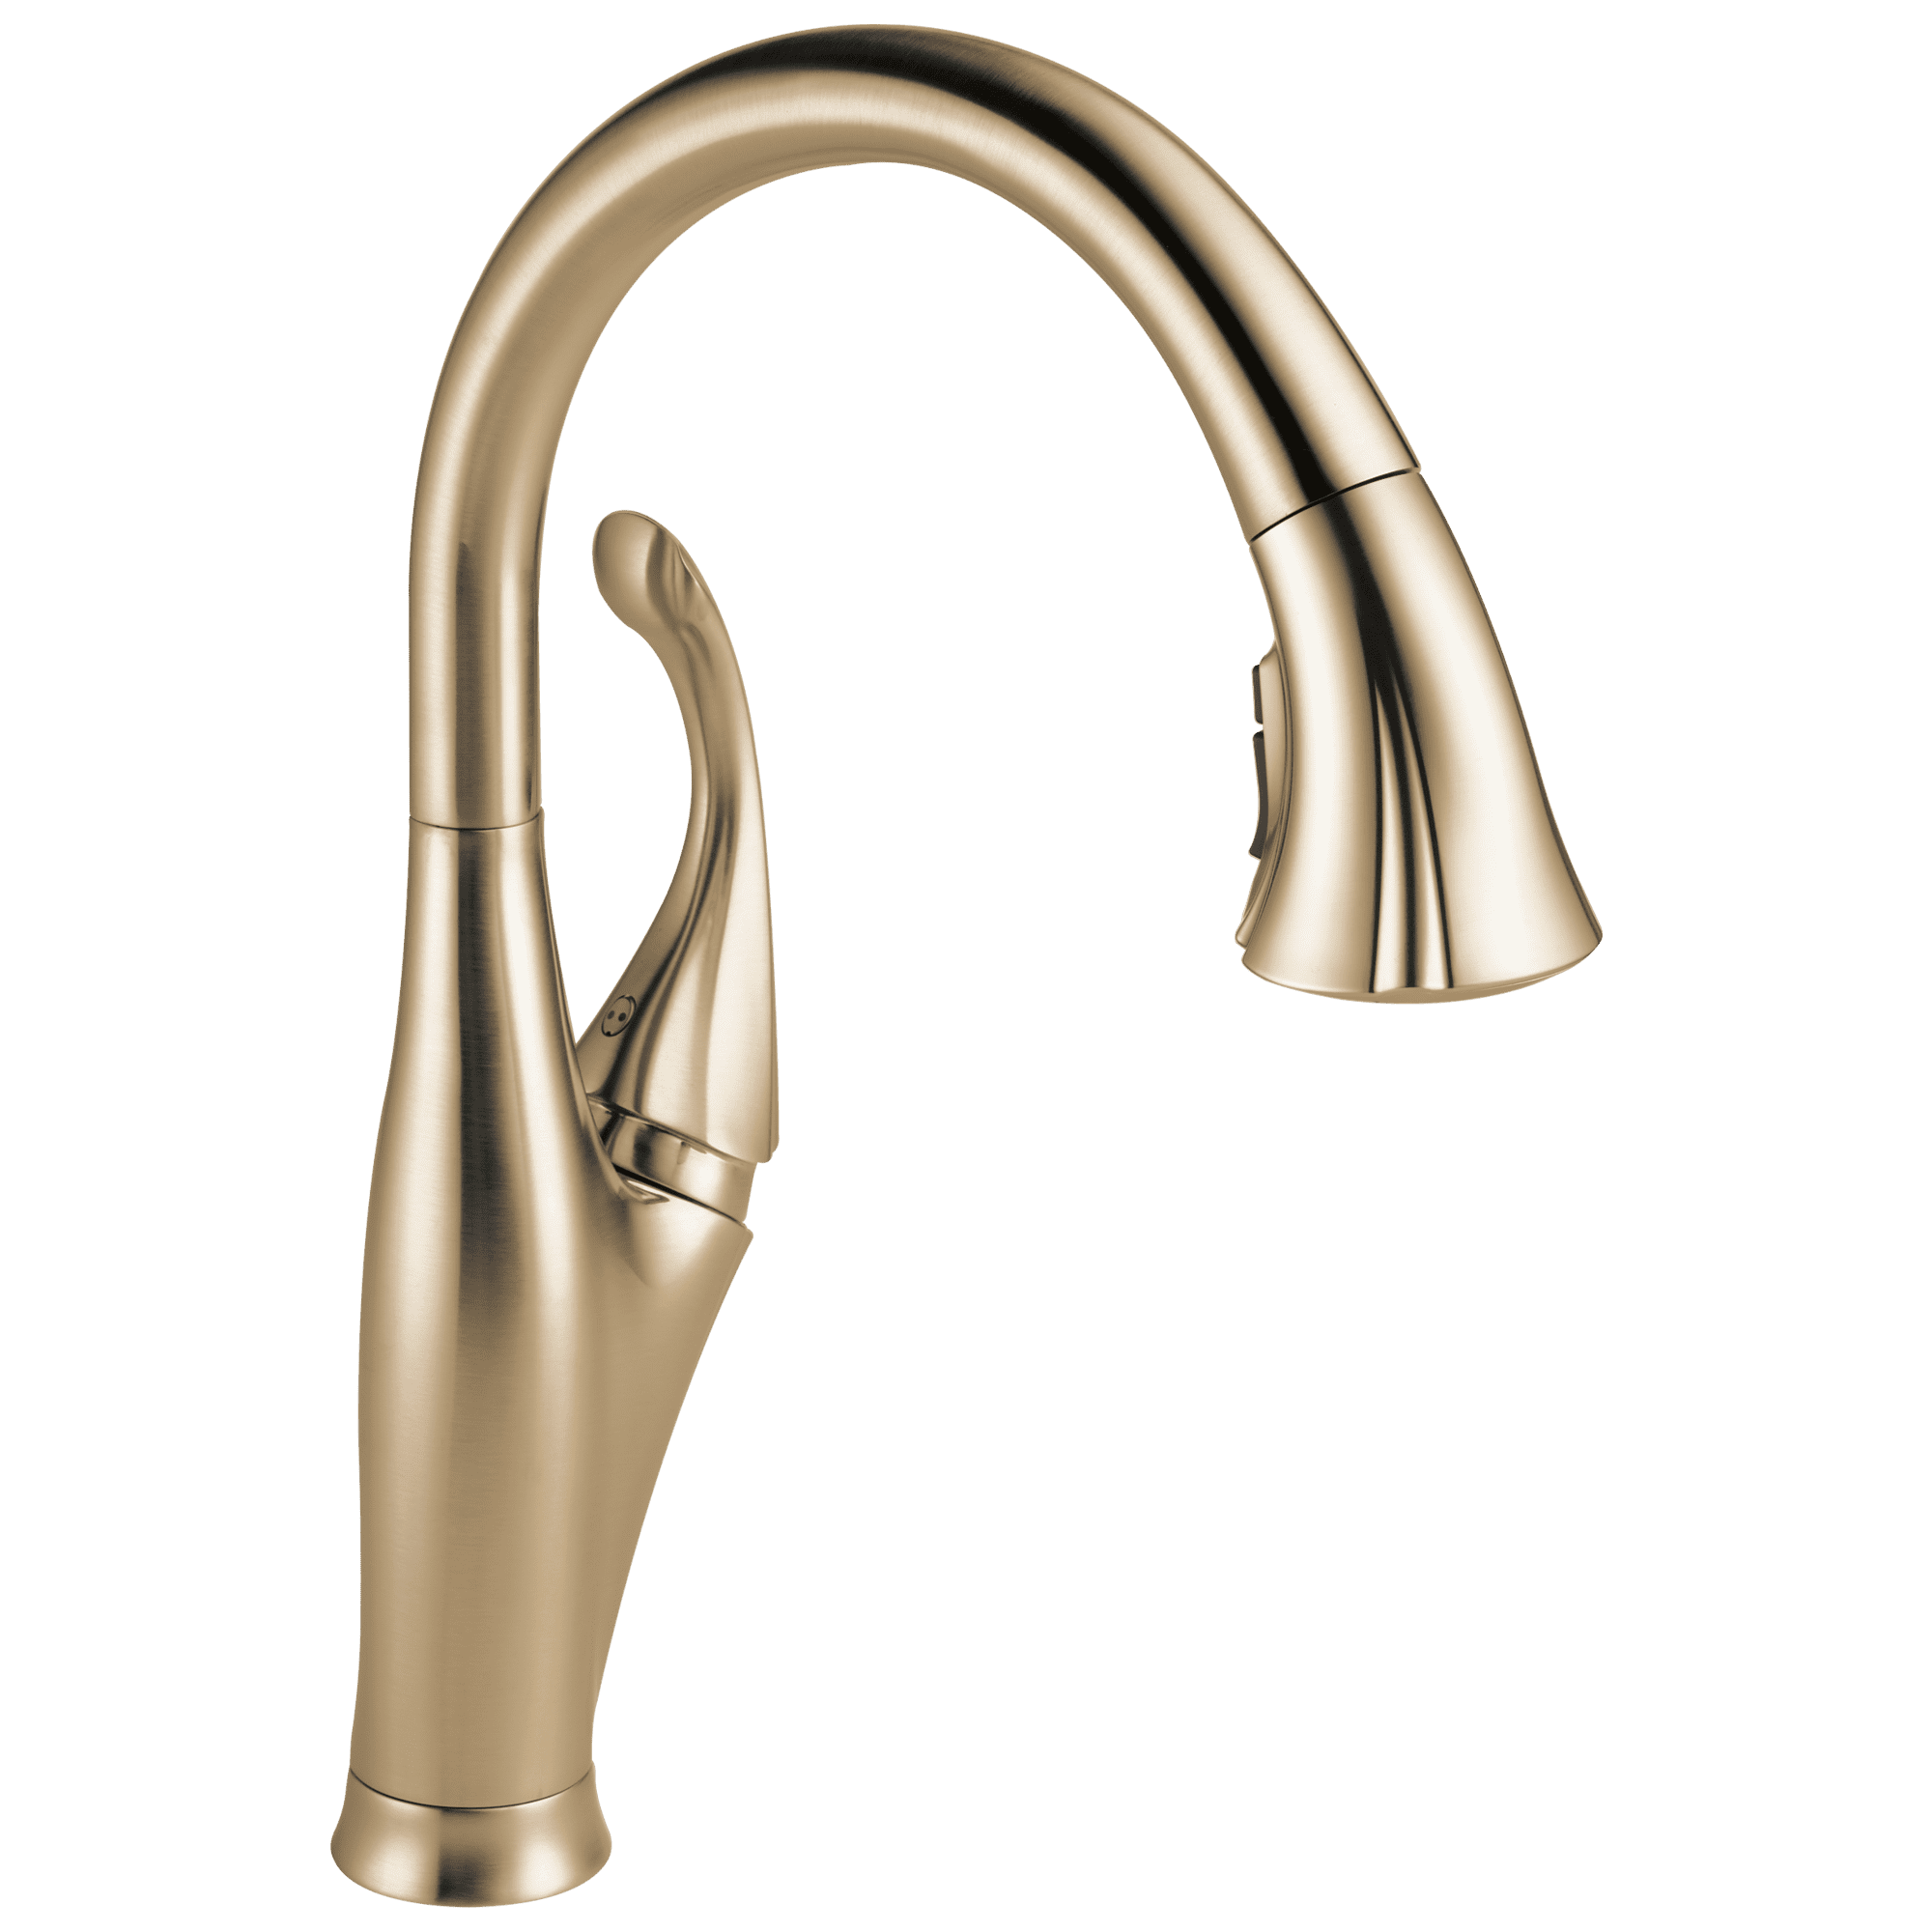 Delta Addison Single Handle Pull-Down Kitchen Faucet with ShieldSpray Technology, Champagne Bronze